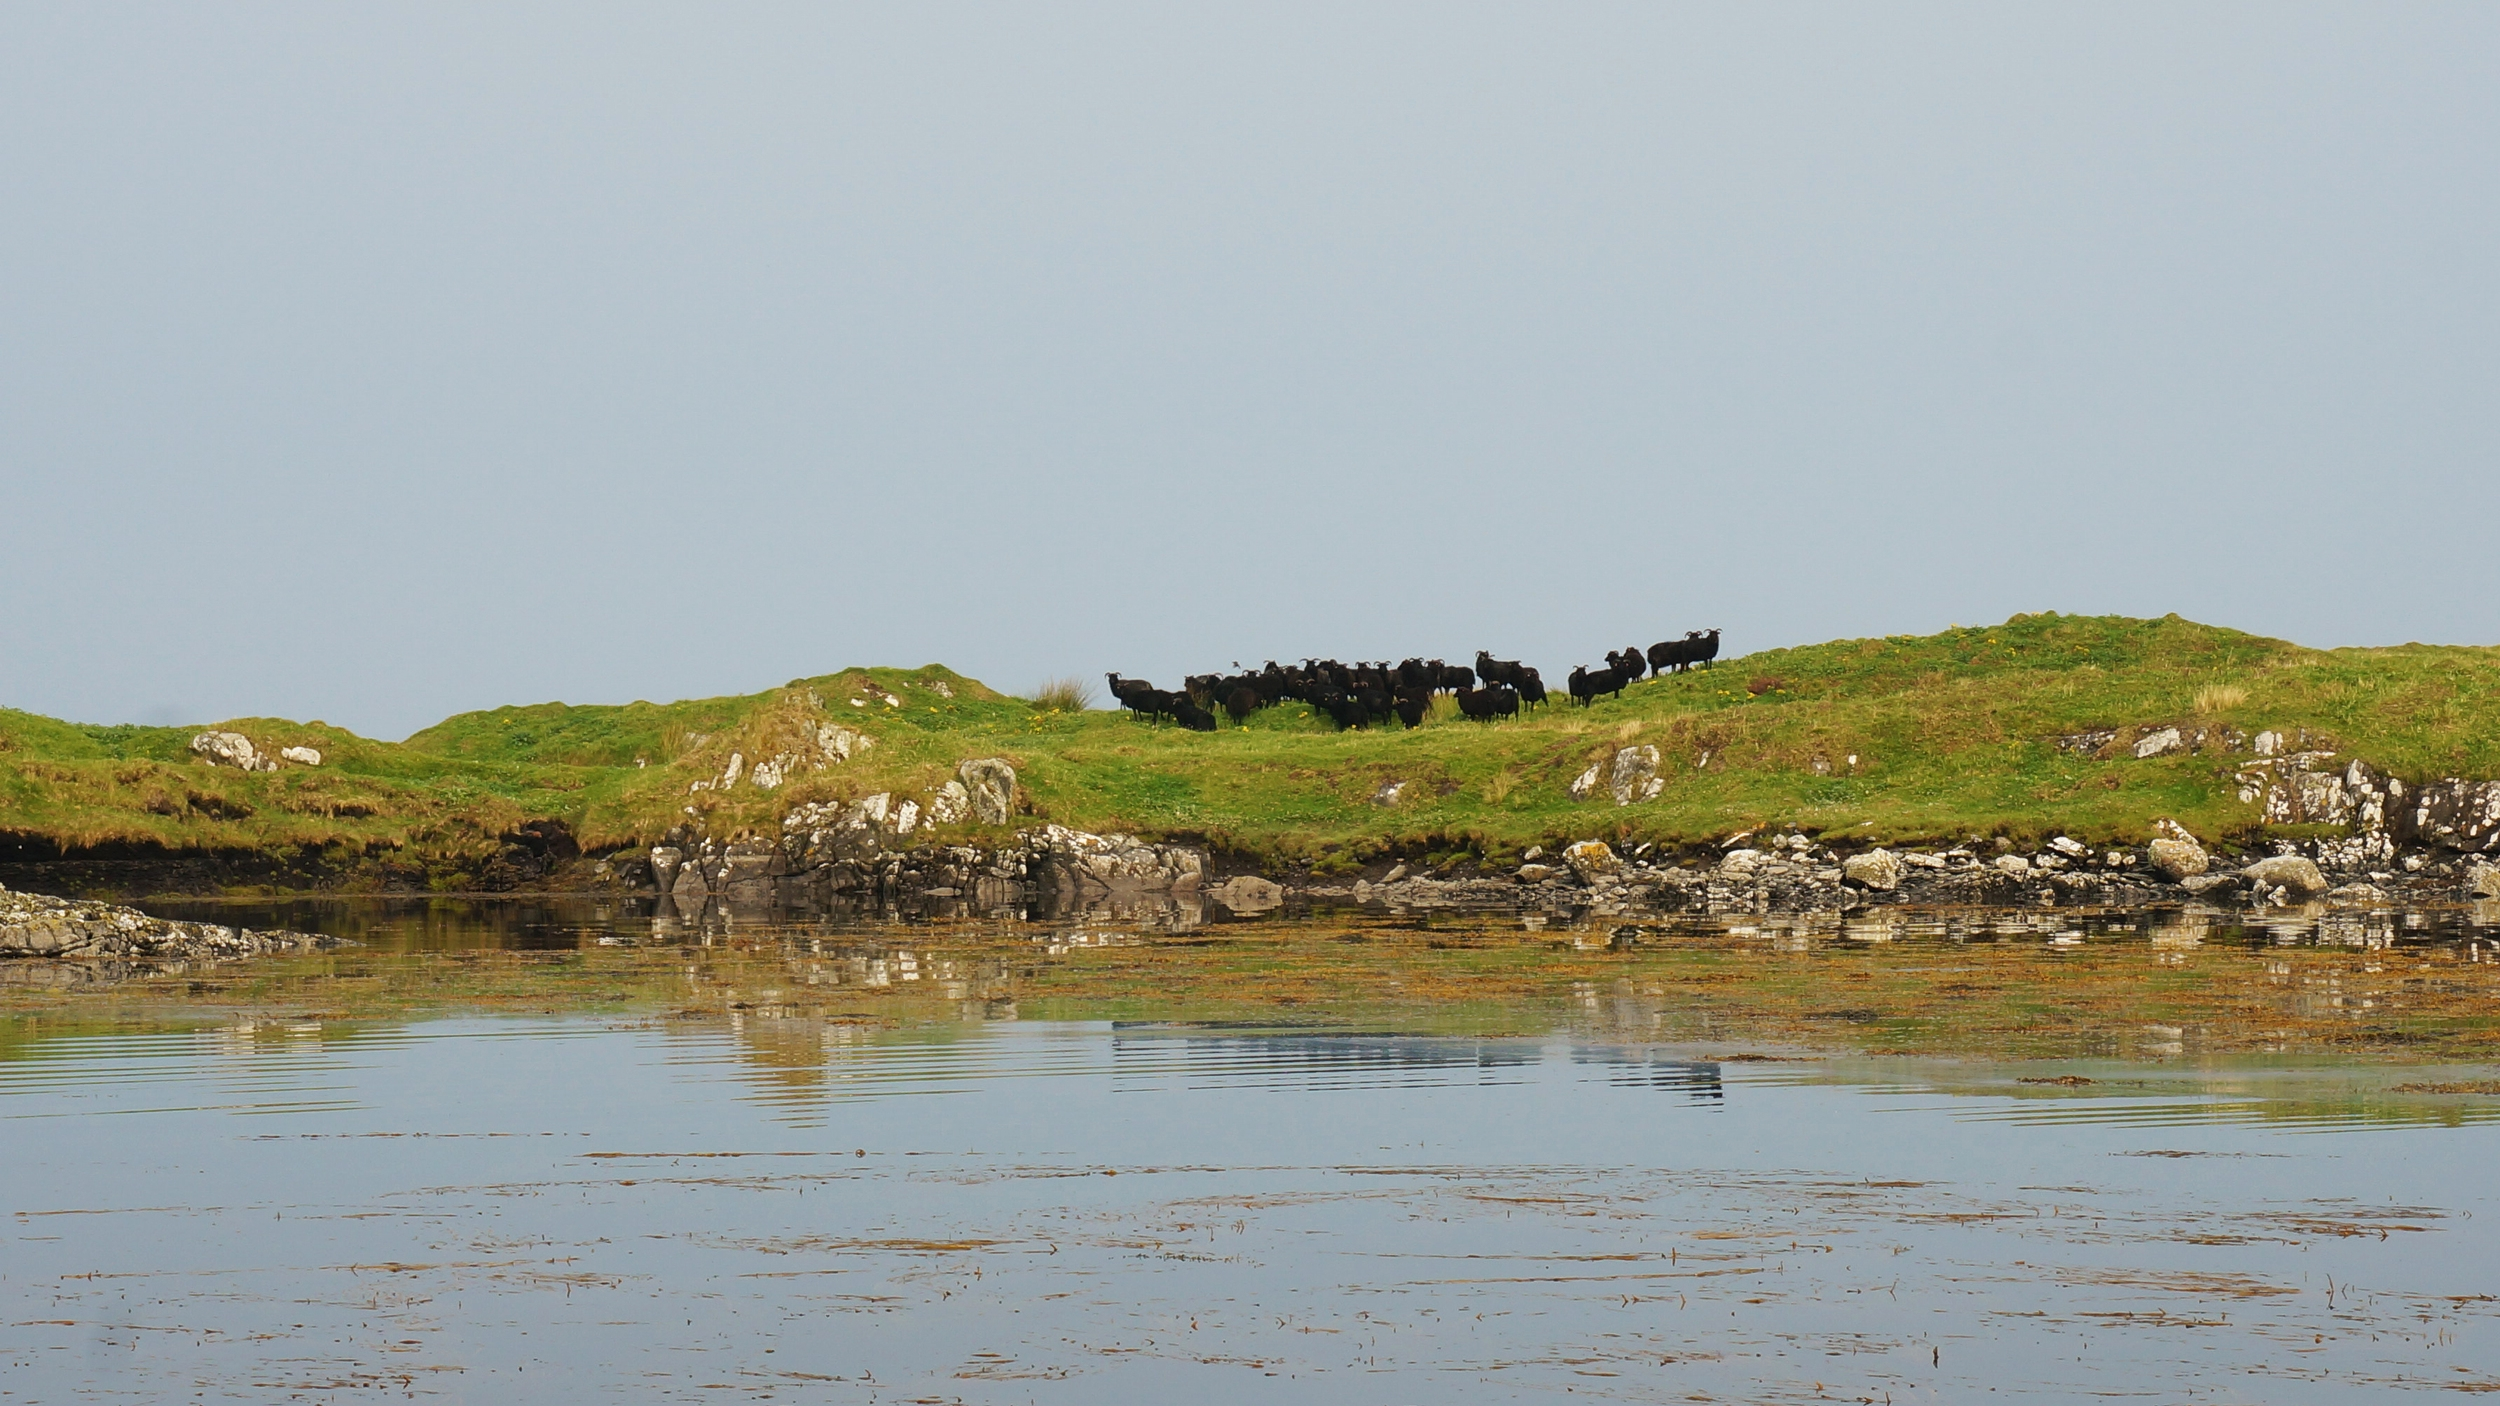 Flock of sheep on uninhabited island